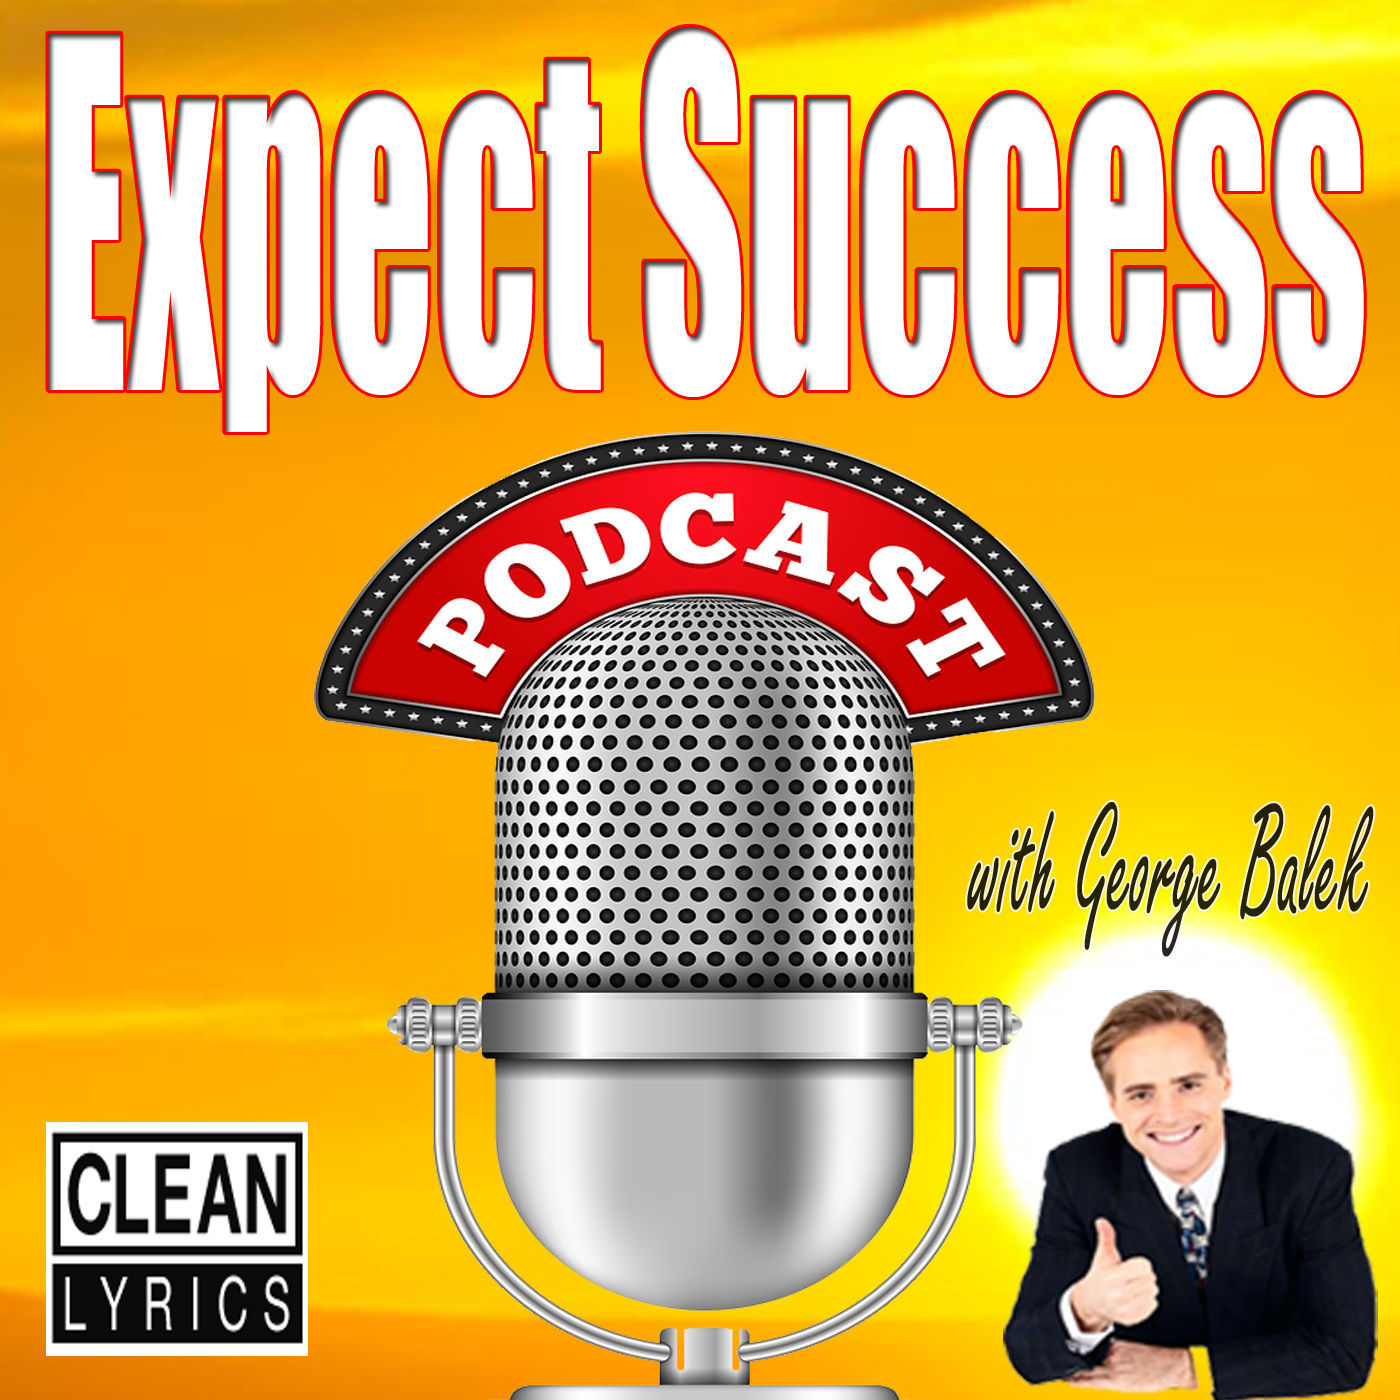 Expect Success Podcast | Personal Development | Network Marketing | Self-Help | MLM | Motivation